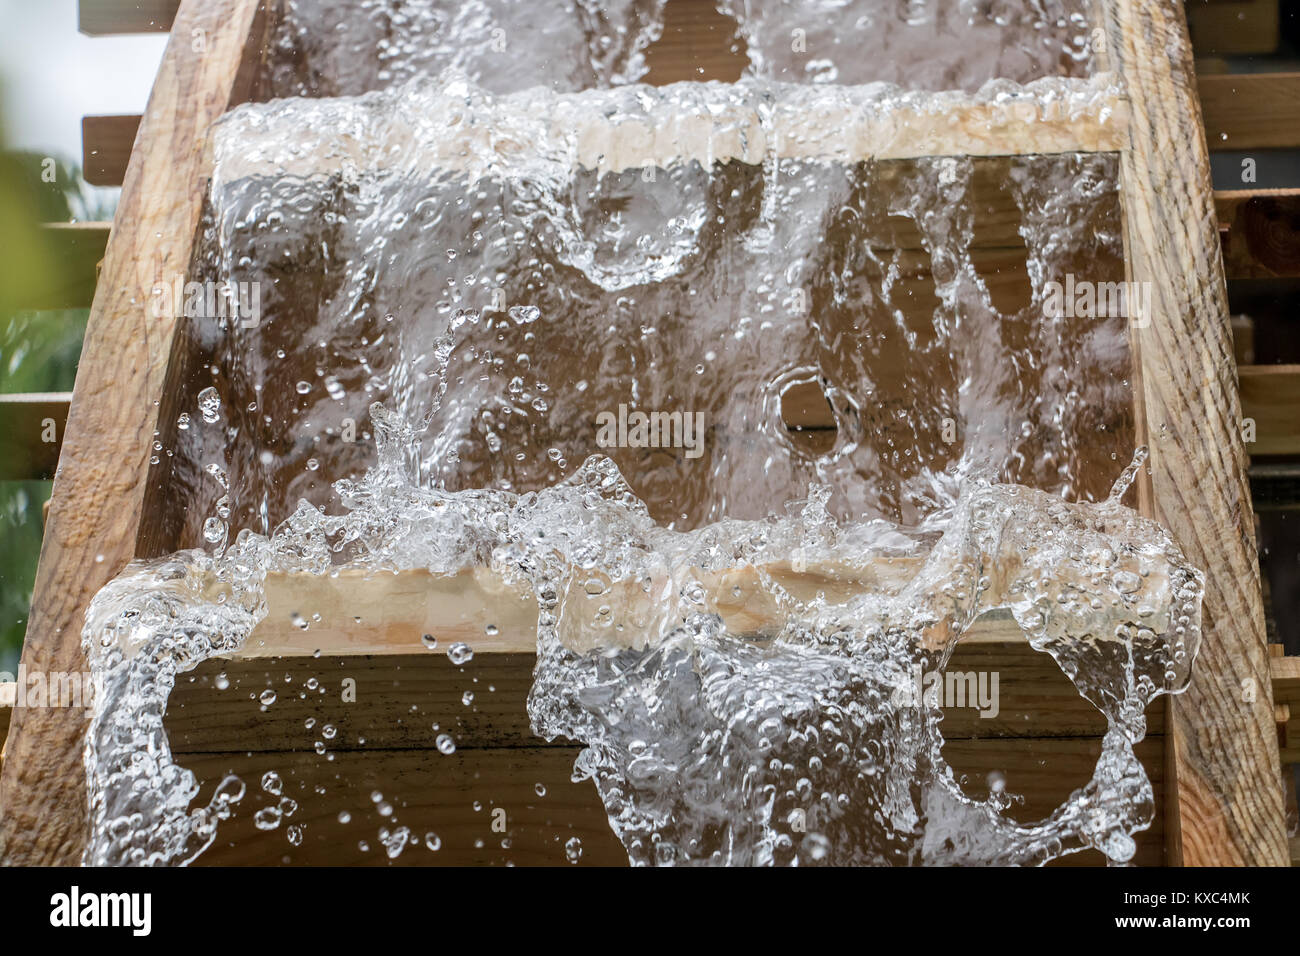 The blades of mill wheel rotates under a stream of water, close up view, open air museum. - Stock Image